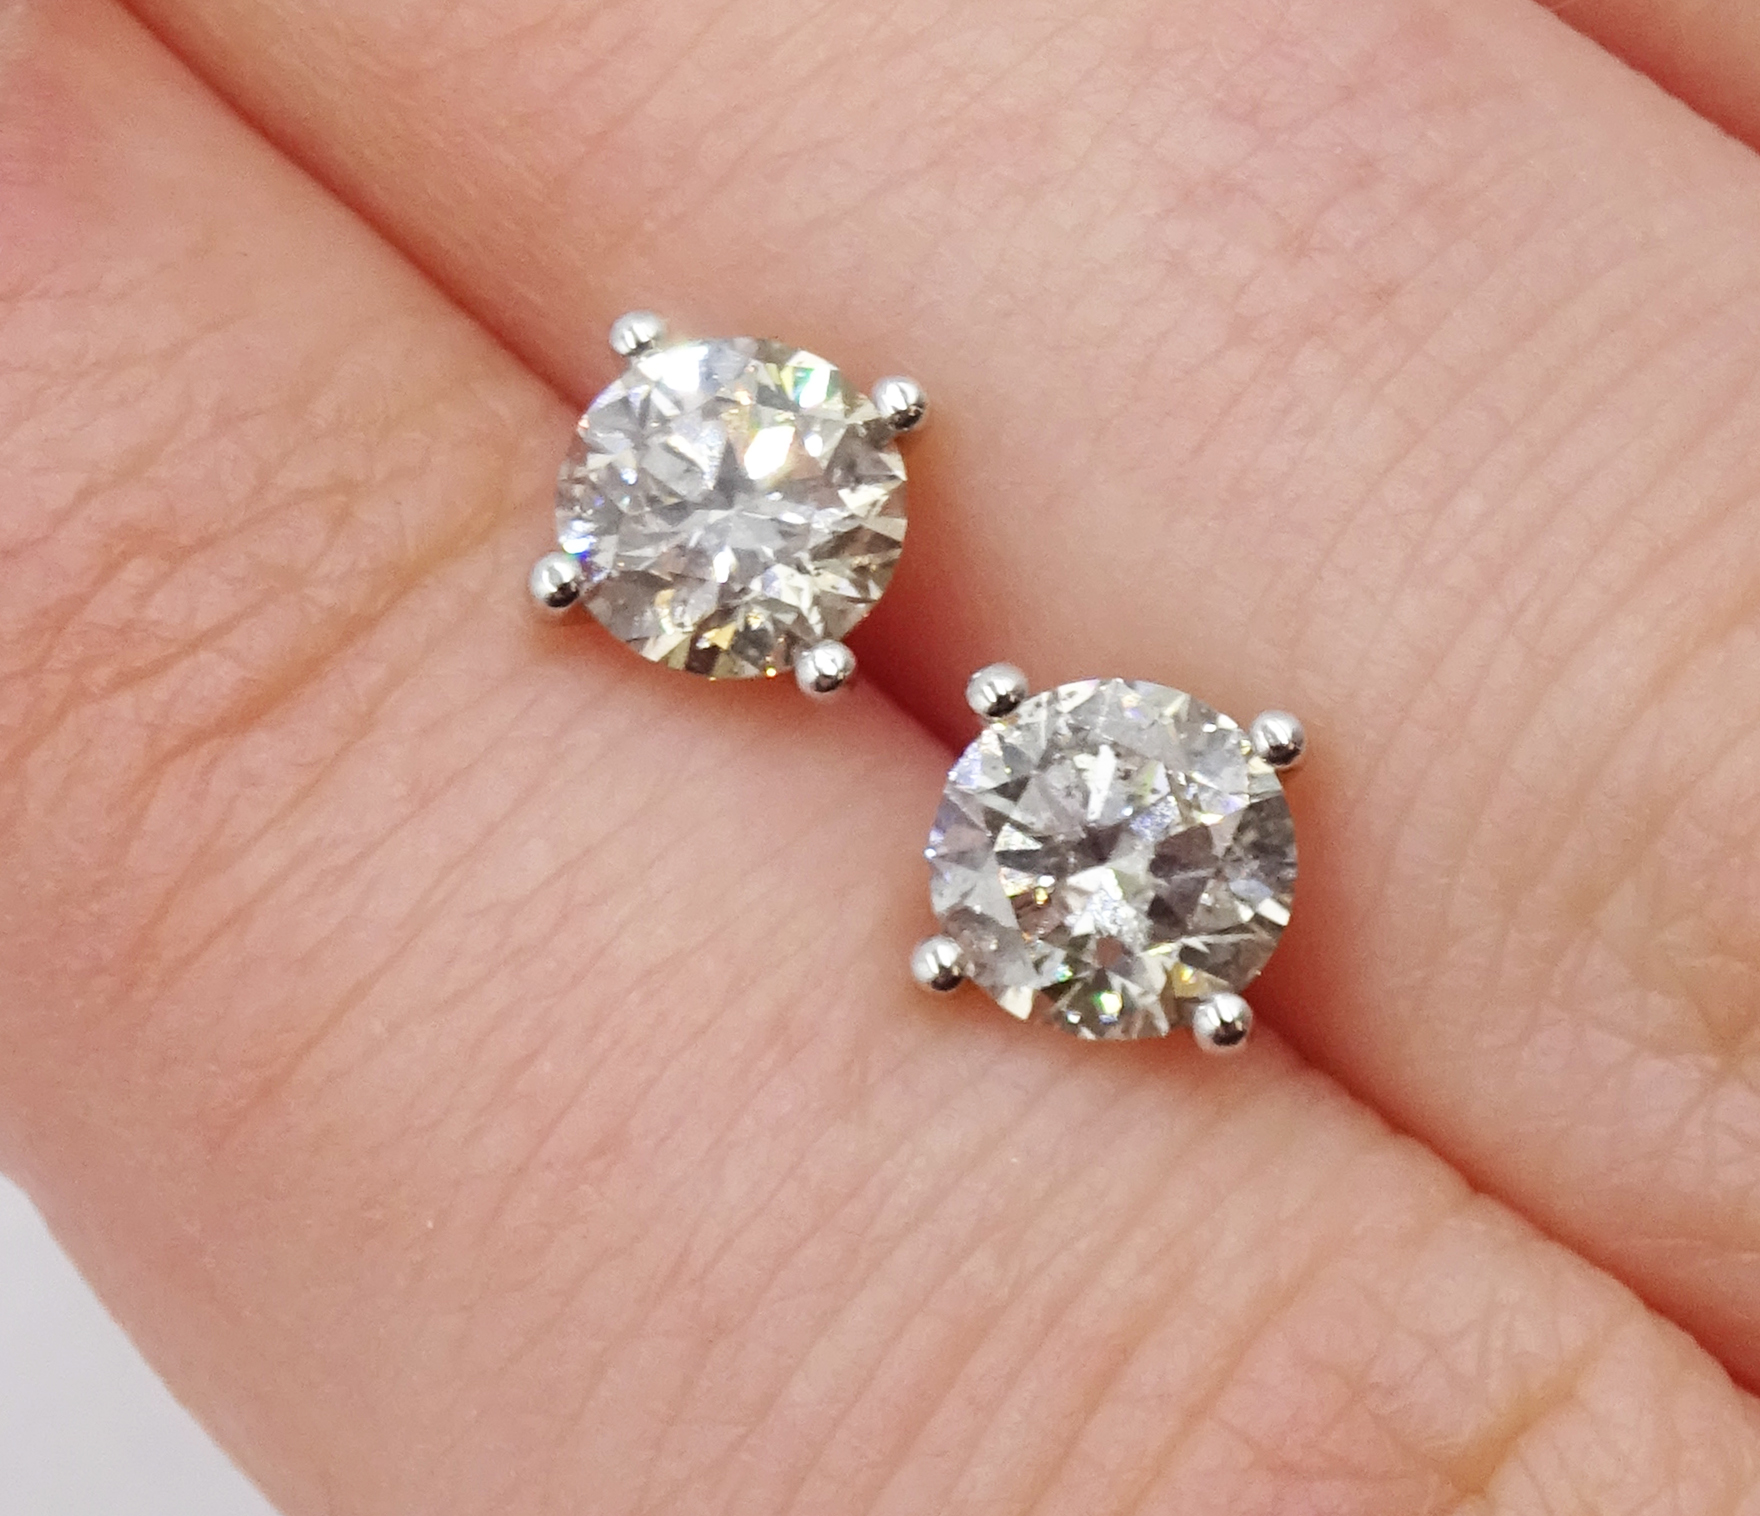 Pair of 18ct white gold brilliant cut diamond stud earrings, stamped 750, total diamond weight - Image 3 of 3